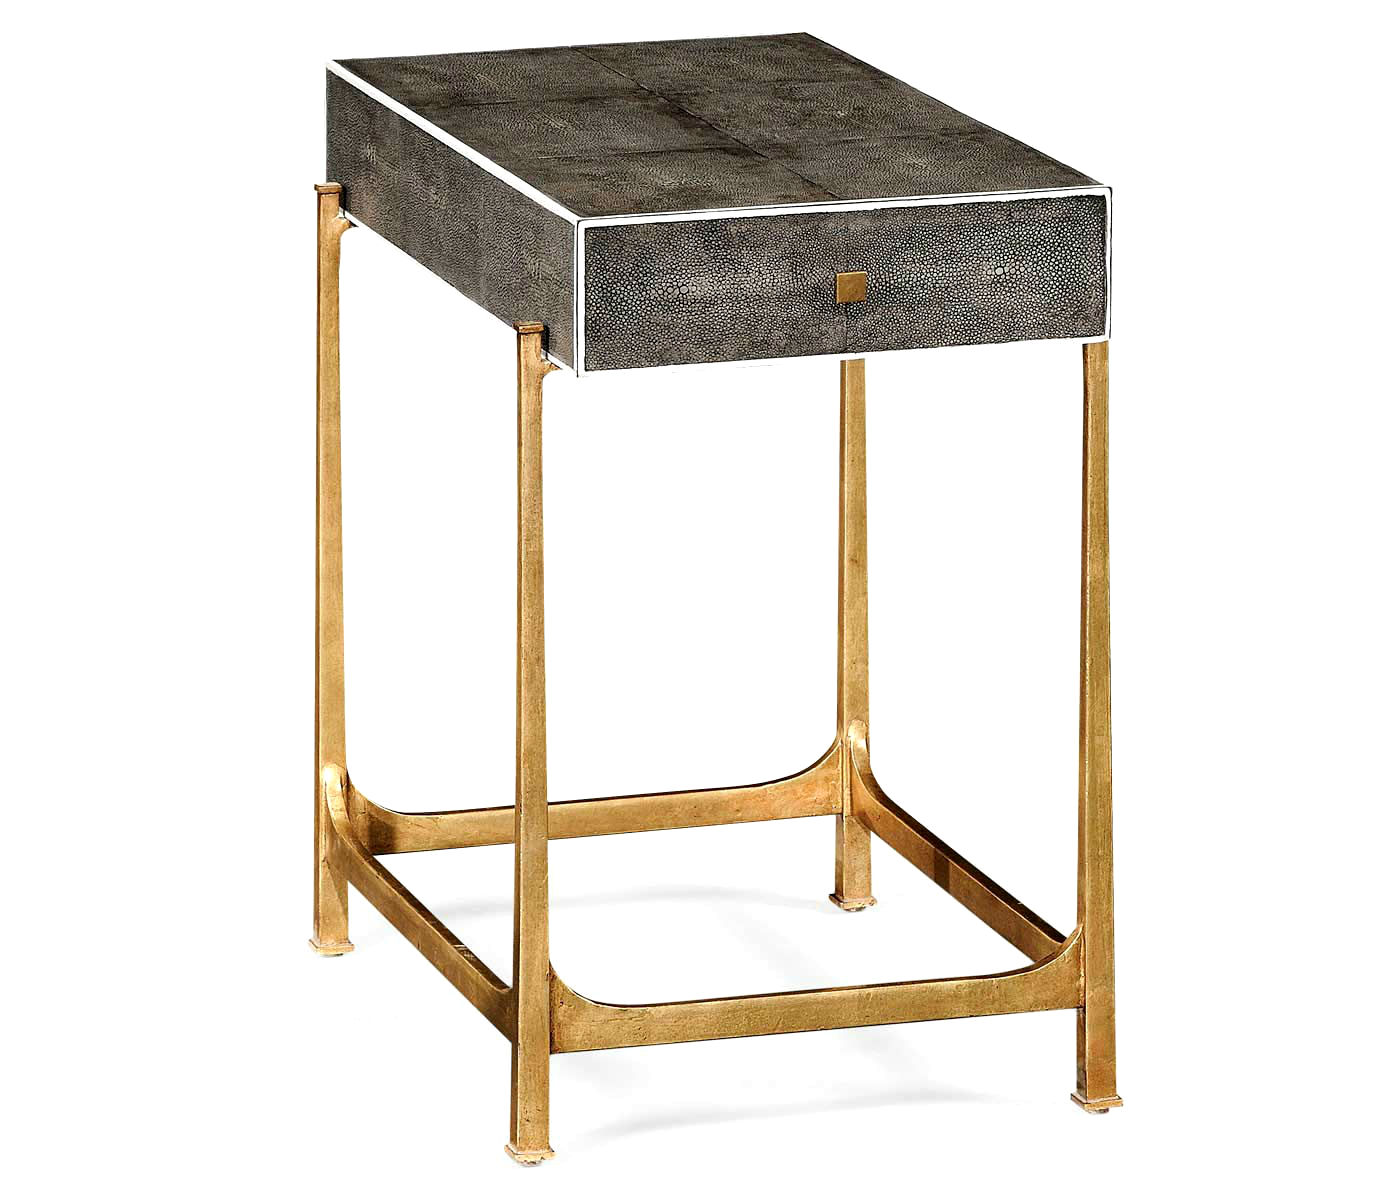 shagreen side table end accent tables tall square art deco iron black gold gilded partner coffee console available hospitality residential grey patio furniture threshold mirrored